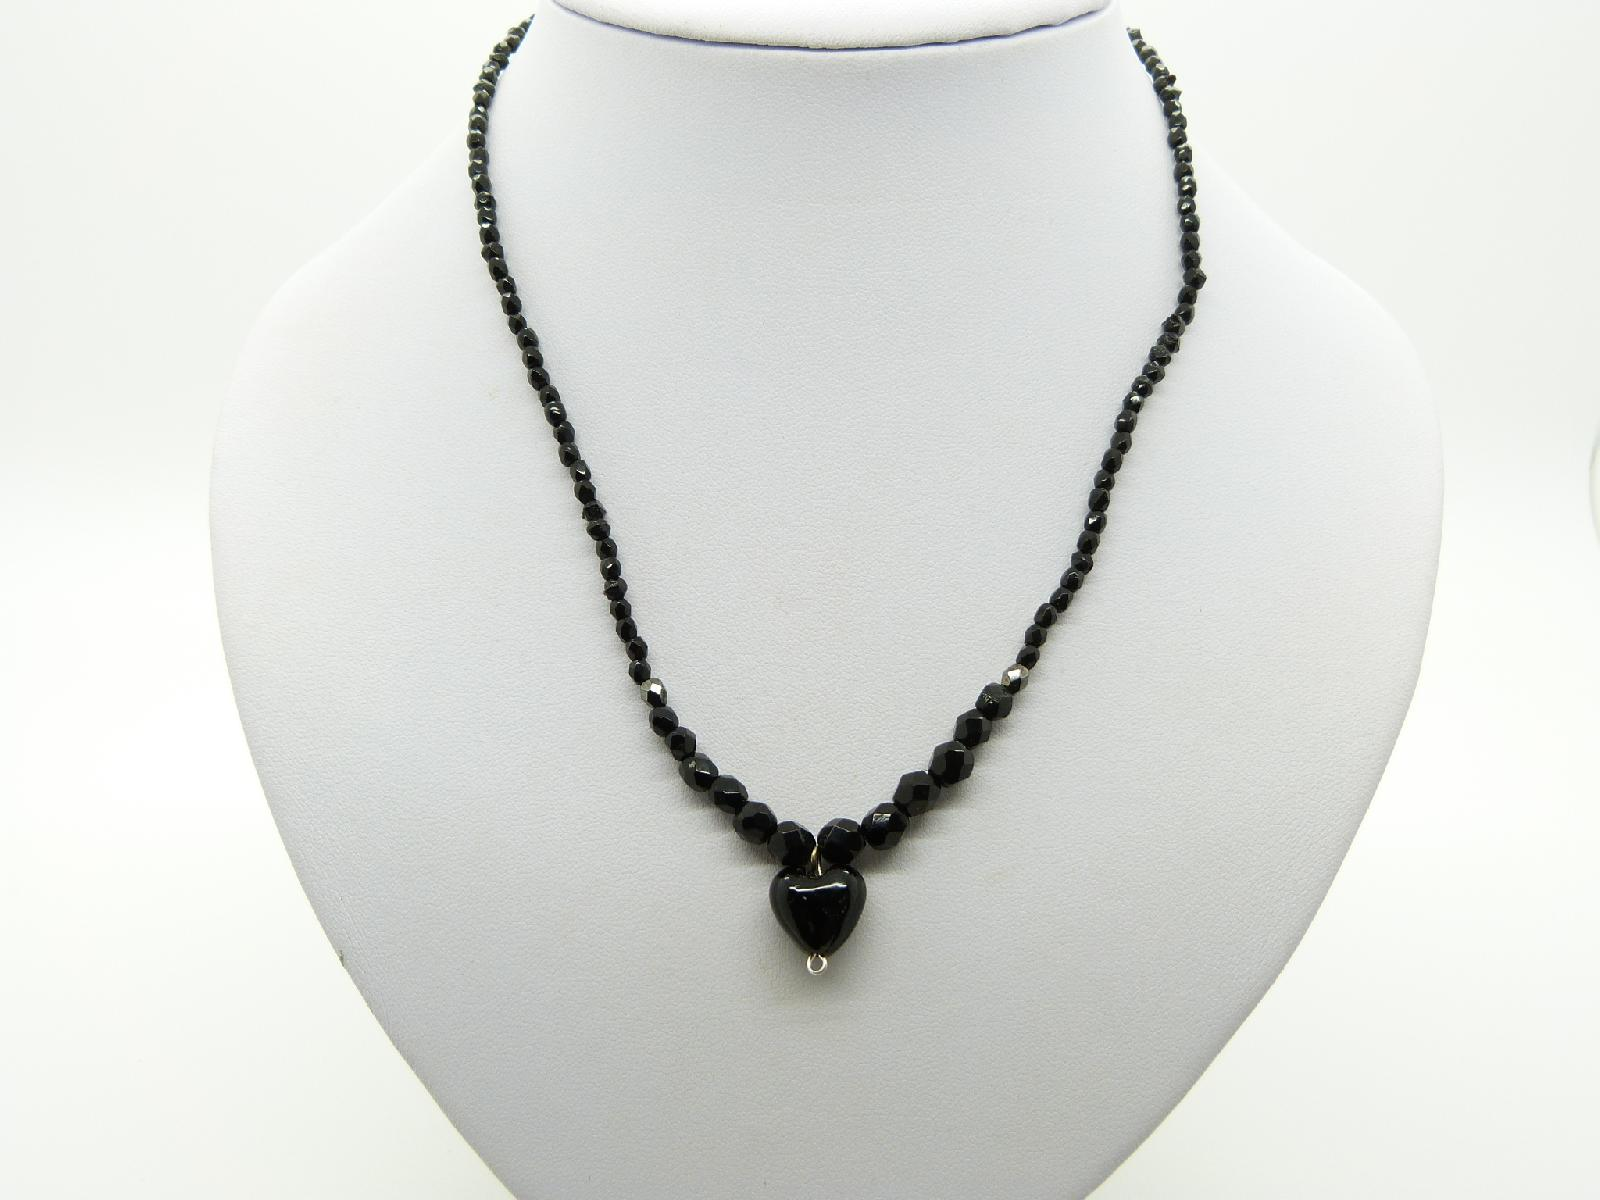 £5.00 - Vintage Redesigned Sparkling Black Crystal Glass Bead Necklace Heart Pendant